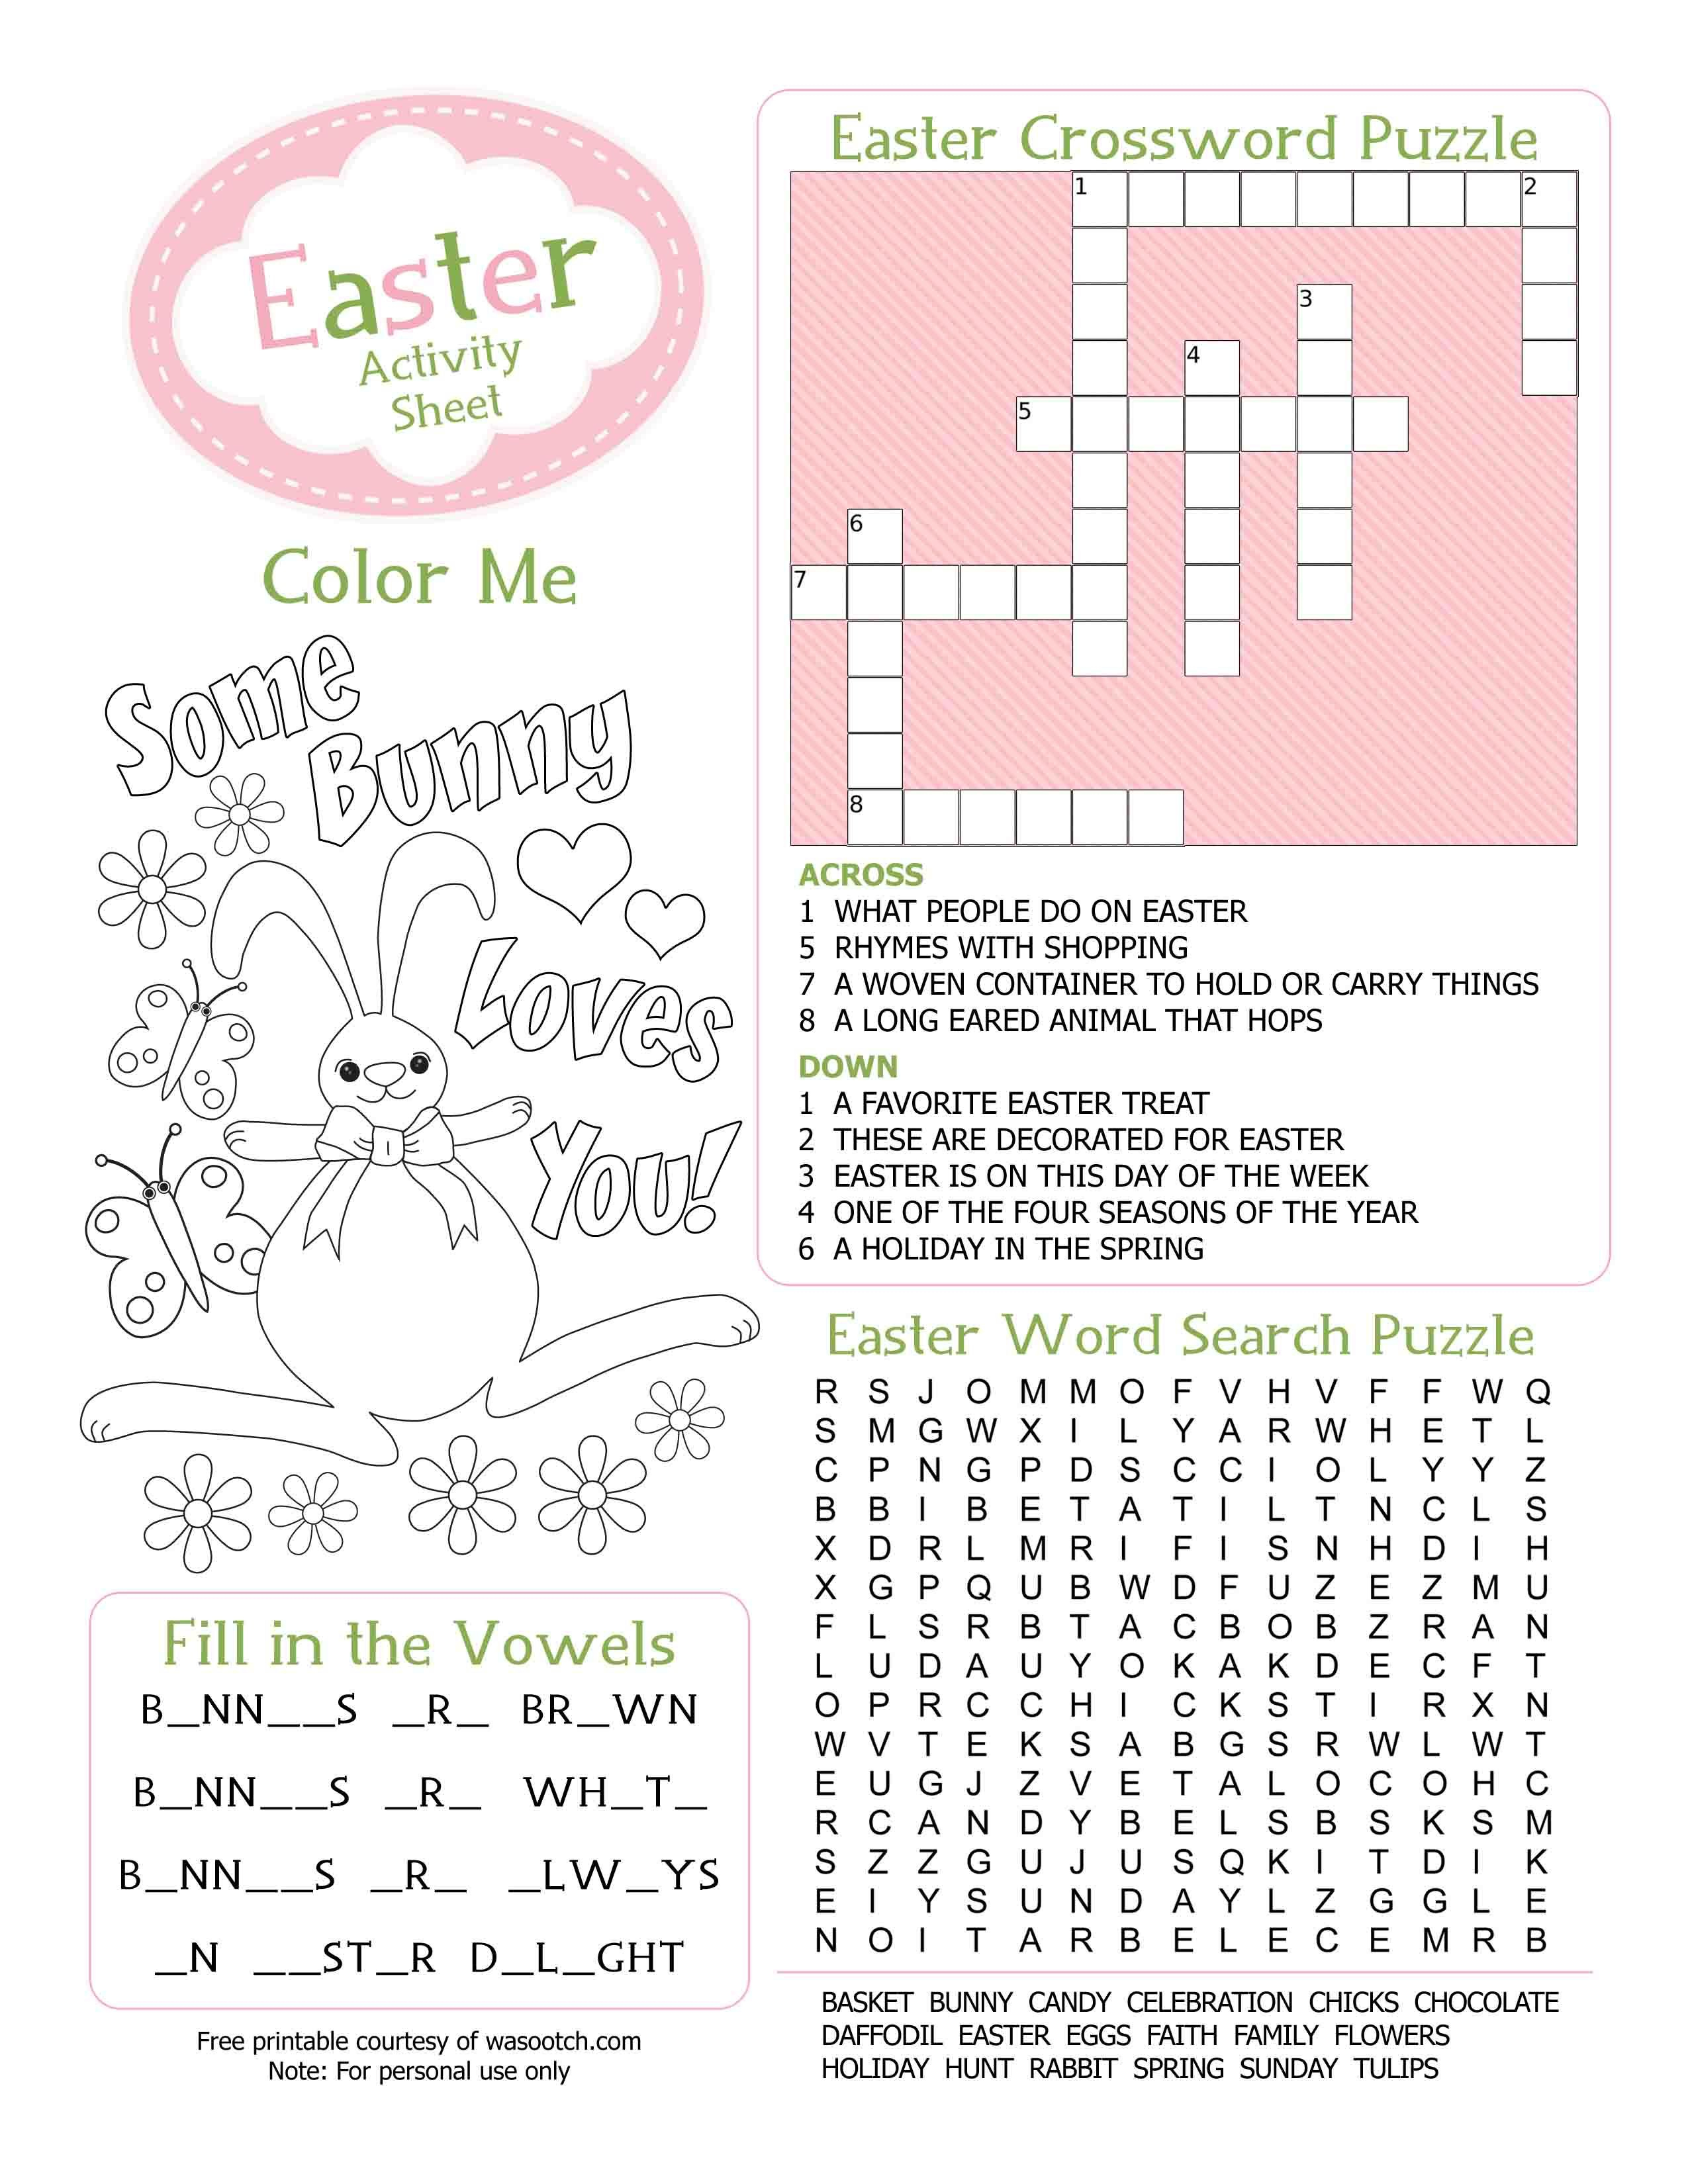 Easter Kid's Activity Sheet Free Printables Available @party - Printable Easter Puzzle